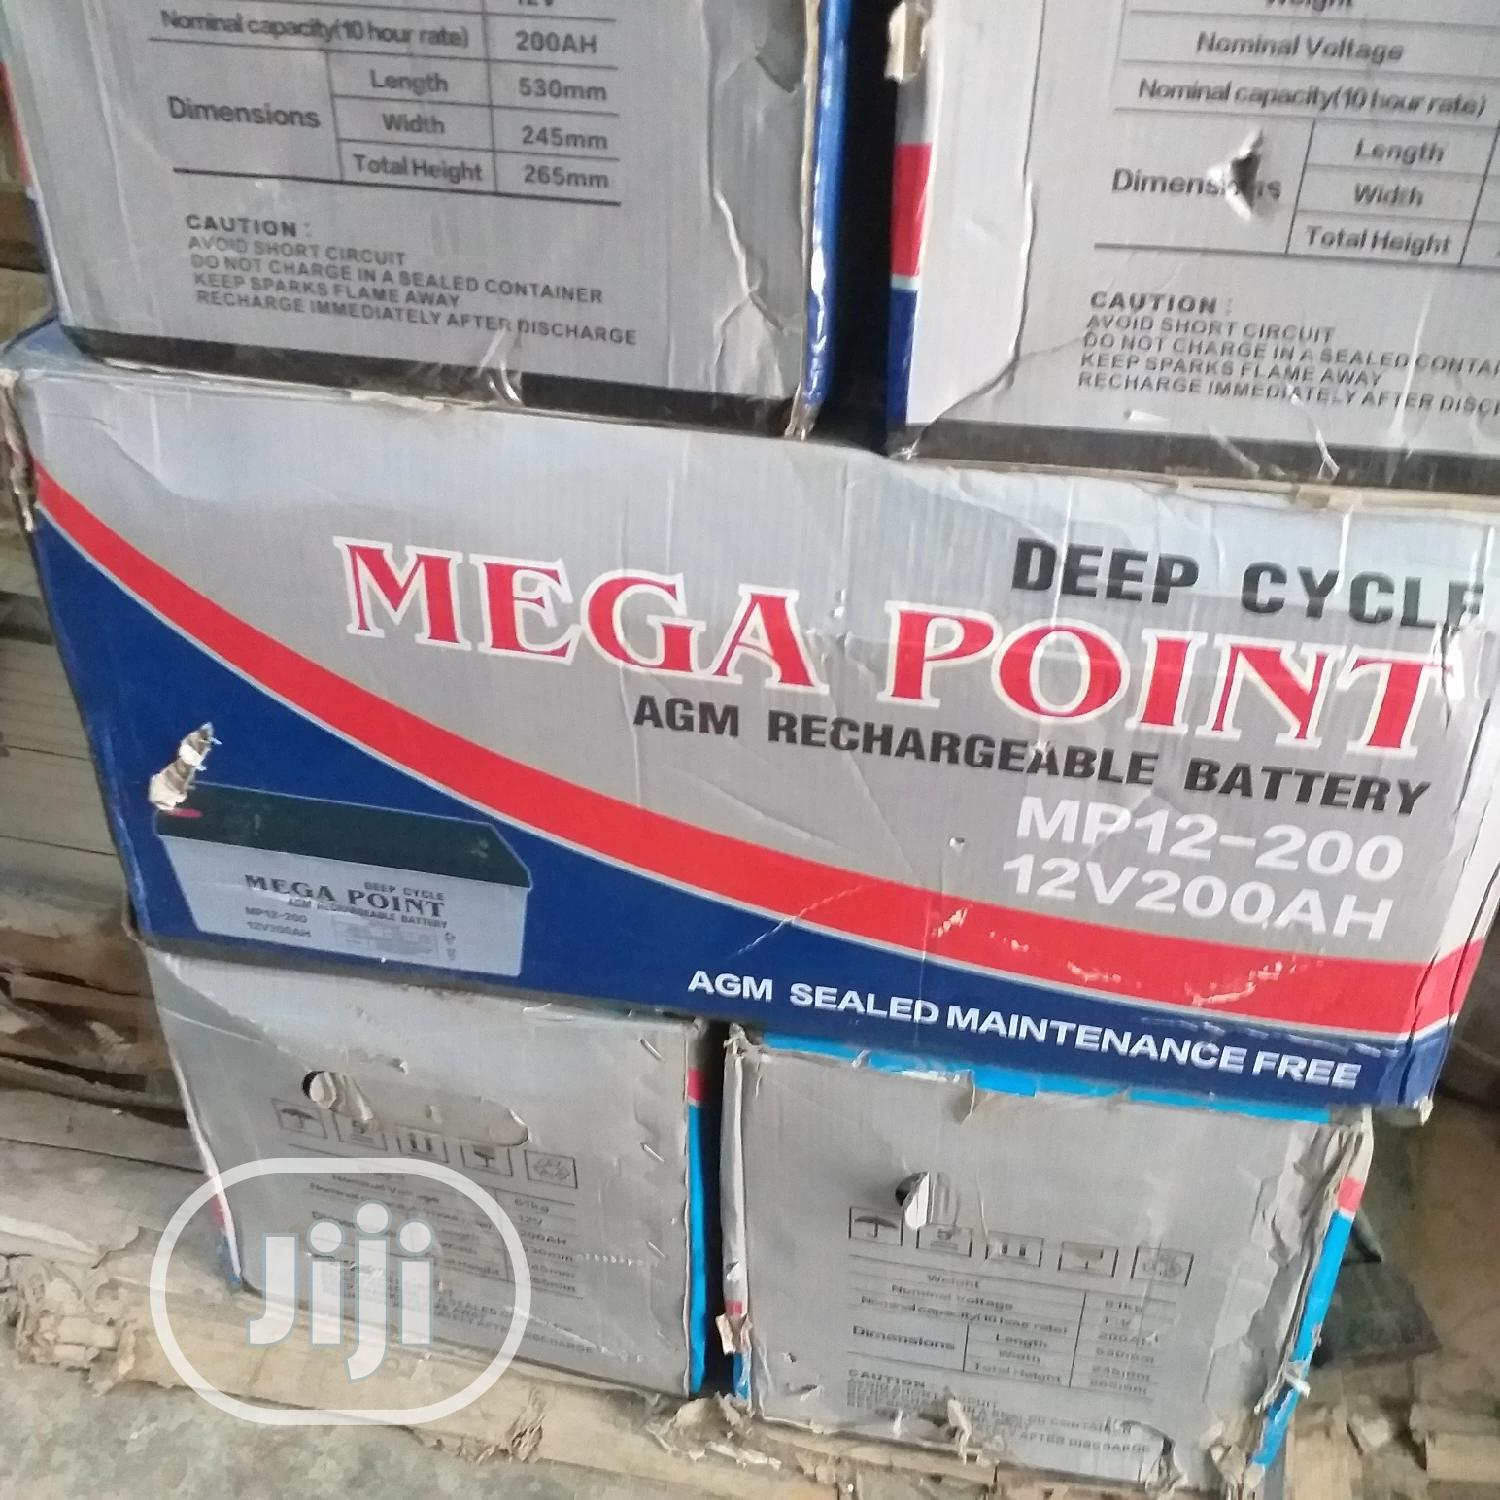 Mega Point Deep Cycle Battery 12V 200ah